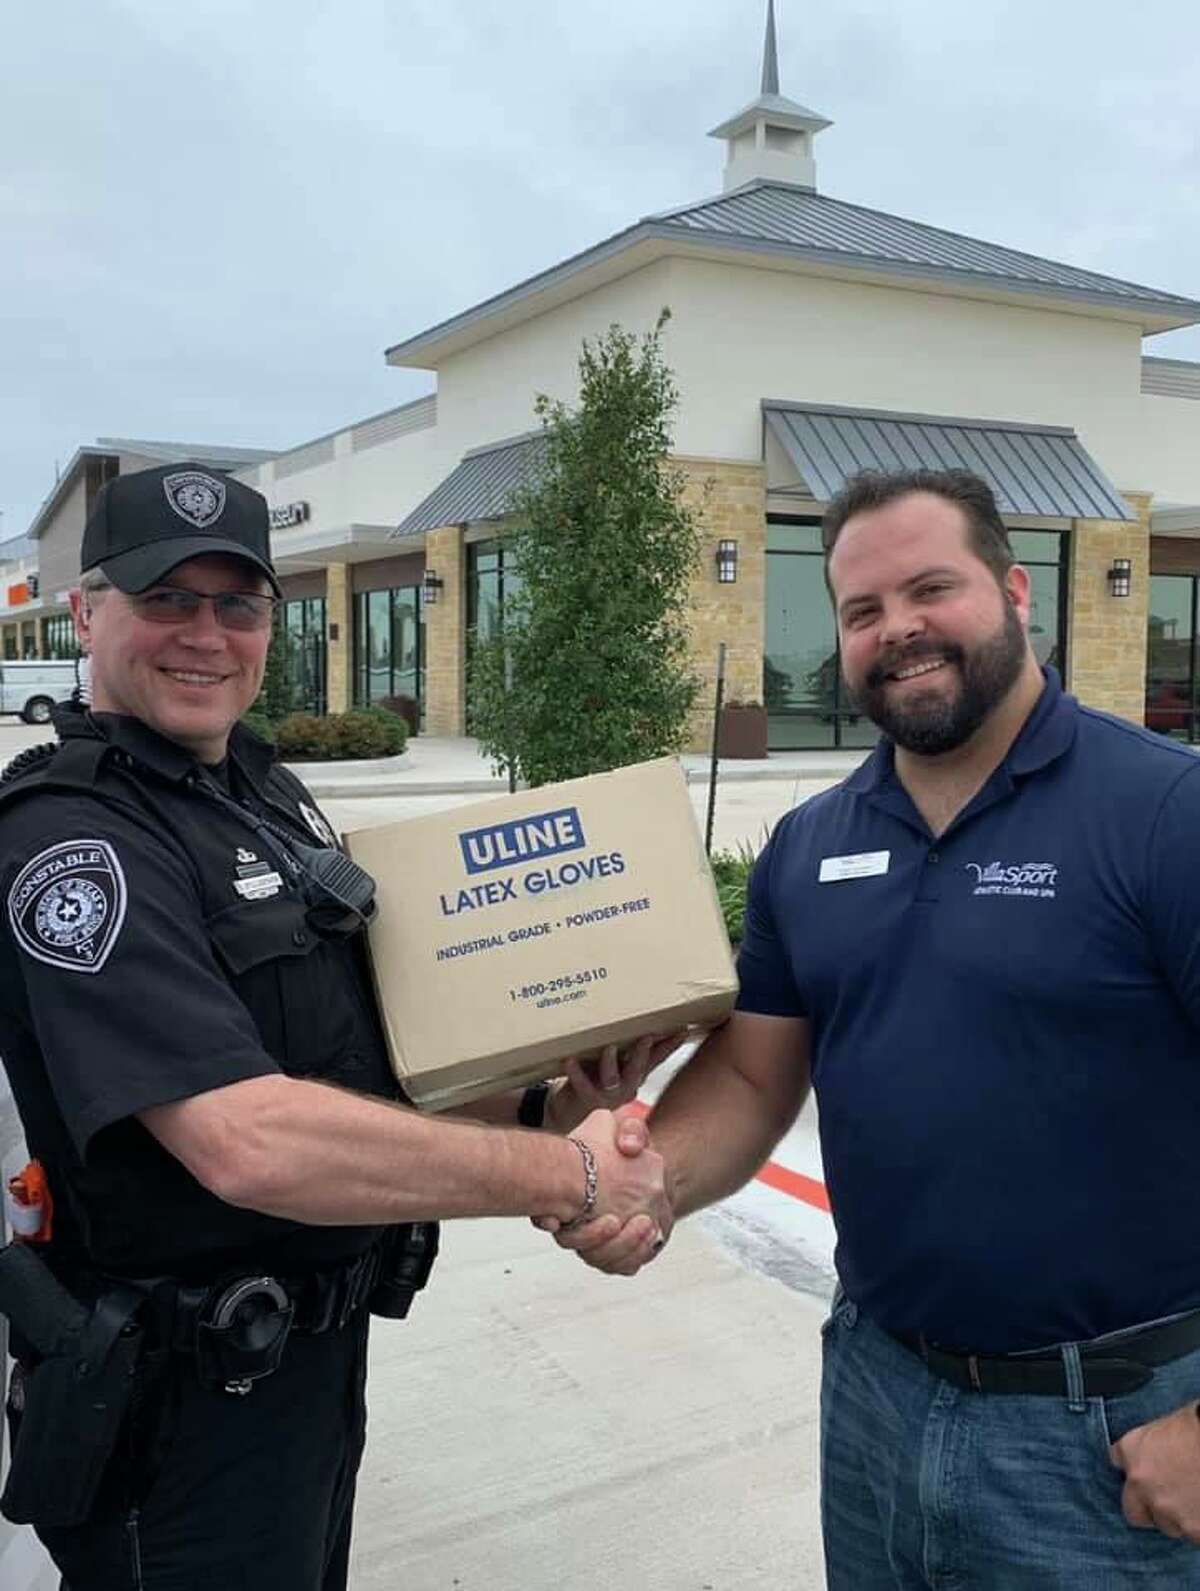 Fort Bend County Constable's Office Precinct 3 Deputy Shawn Stillabower accepts a glove donation from Thomas Westbrook, VillaSport general manager.